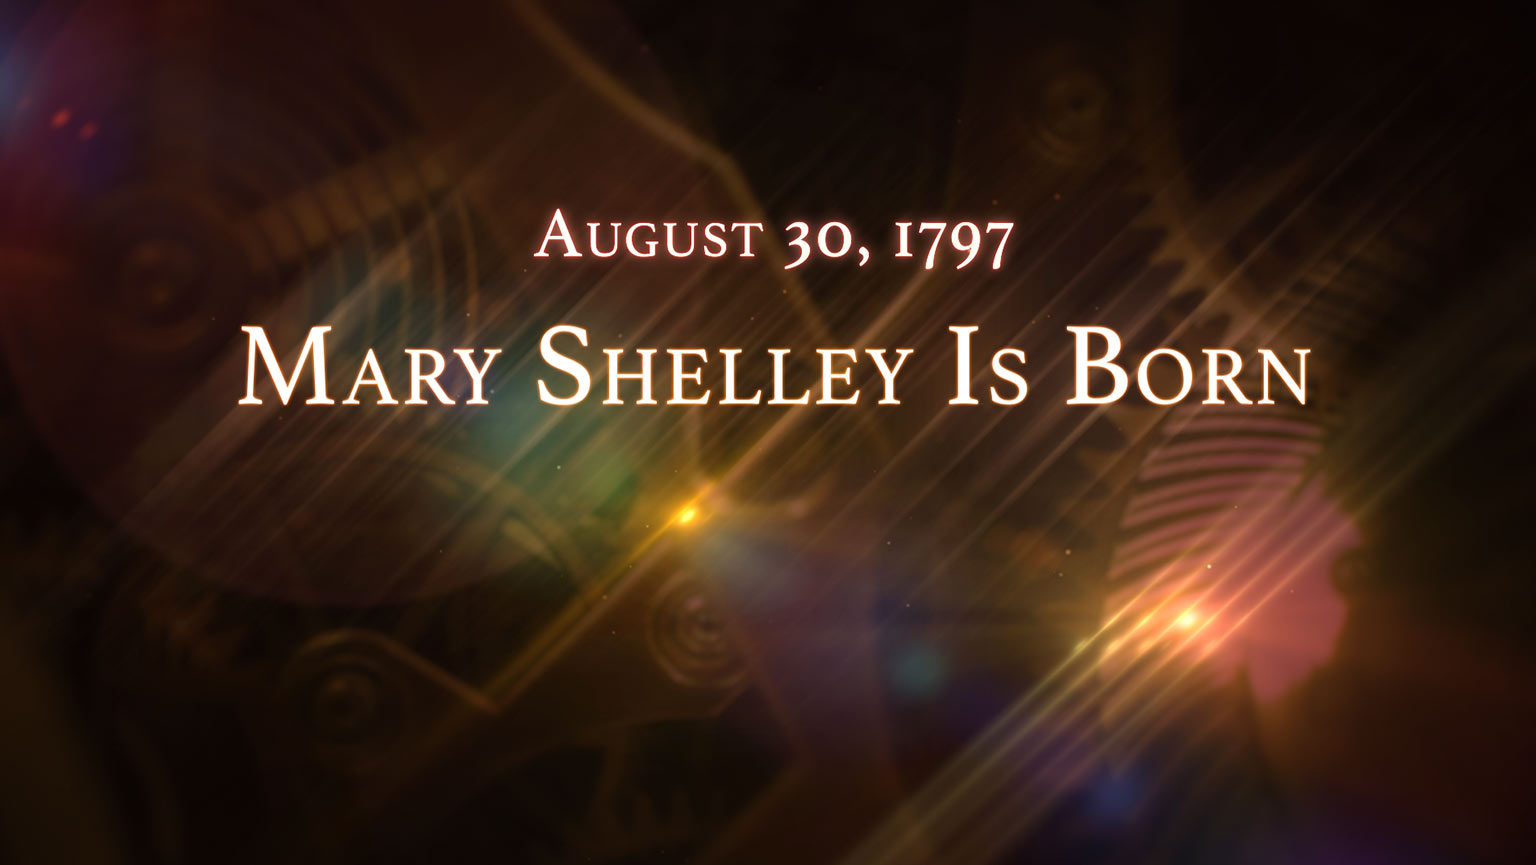 August 30, 1797: Mary Shelley Is Born